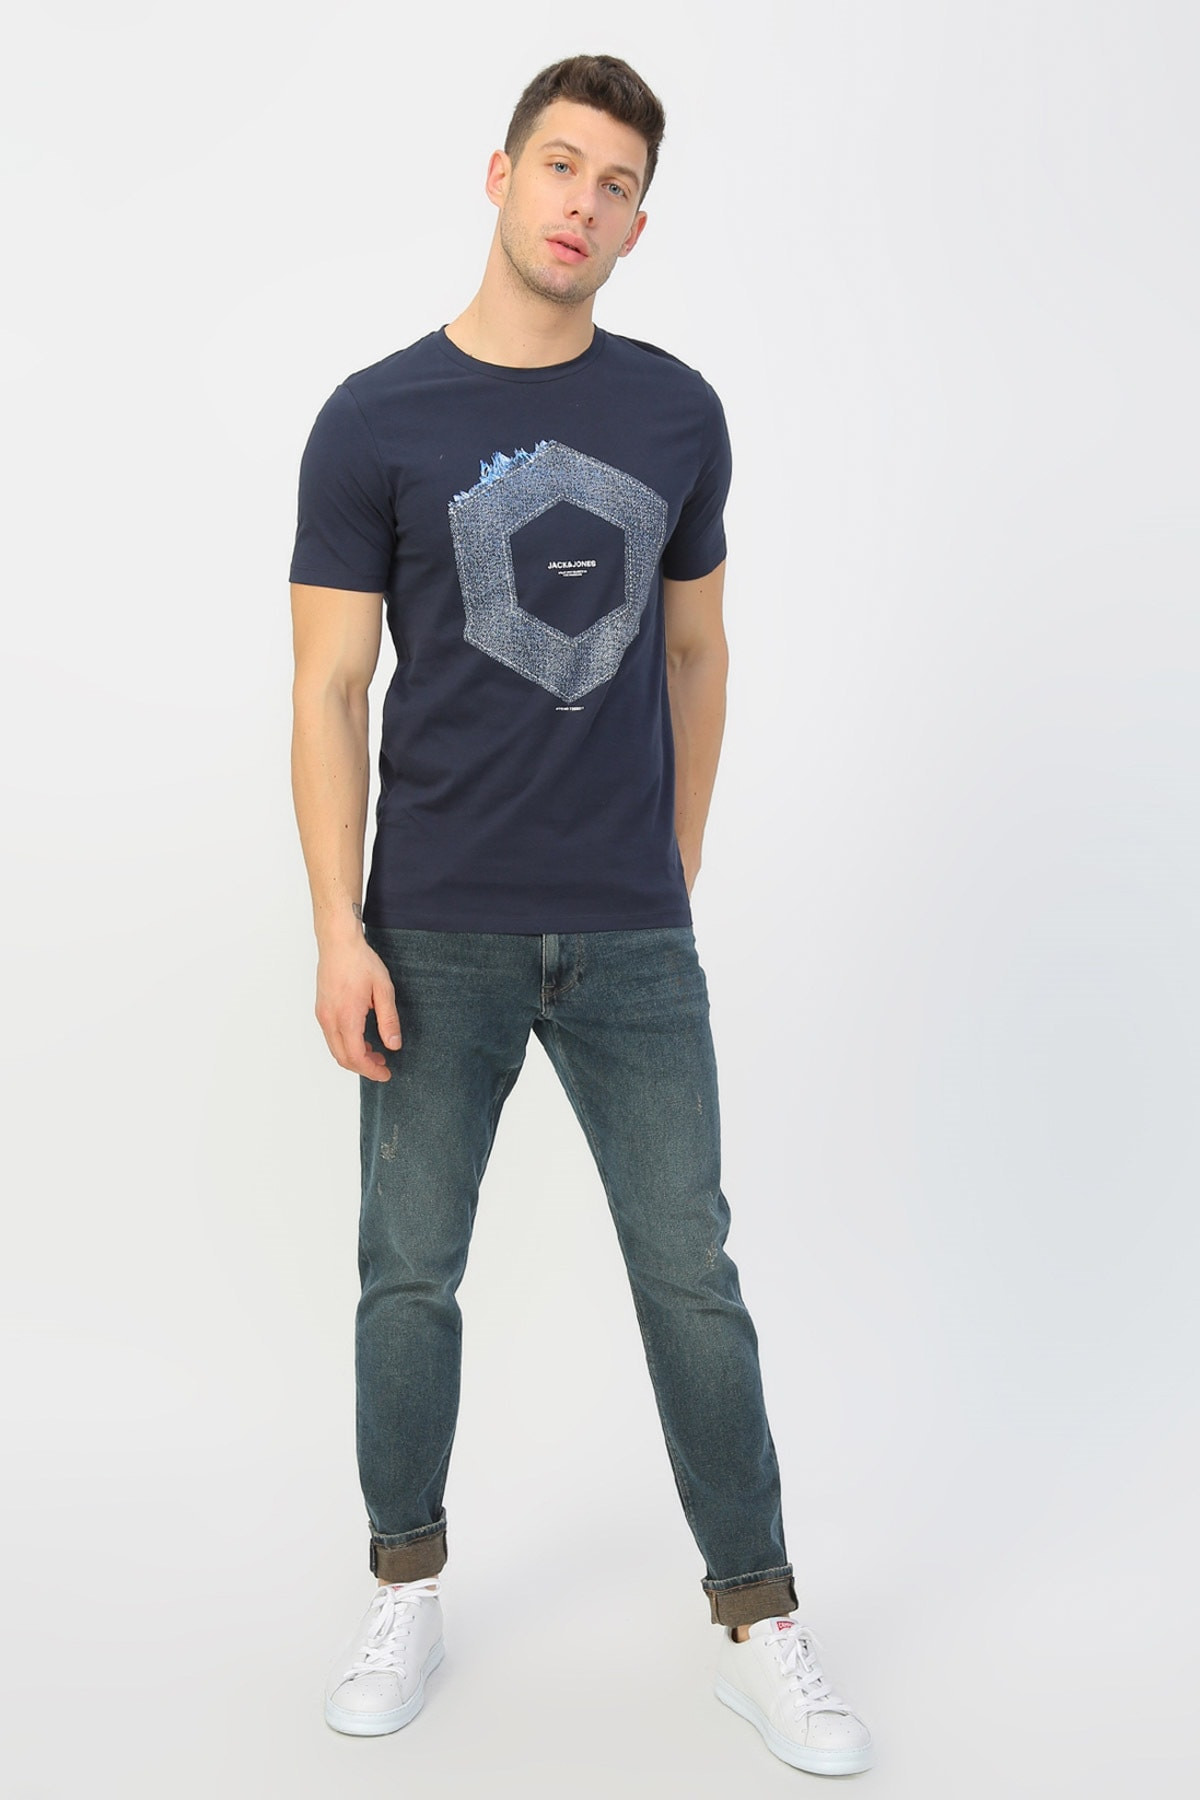 Jack & Jones T-Shirt - Tutan Core Tee SS Crew Neck 12167185 1